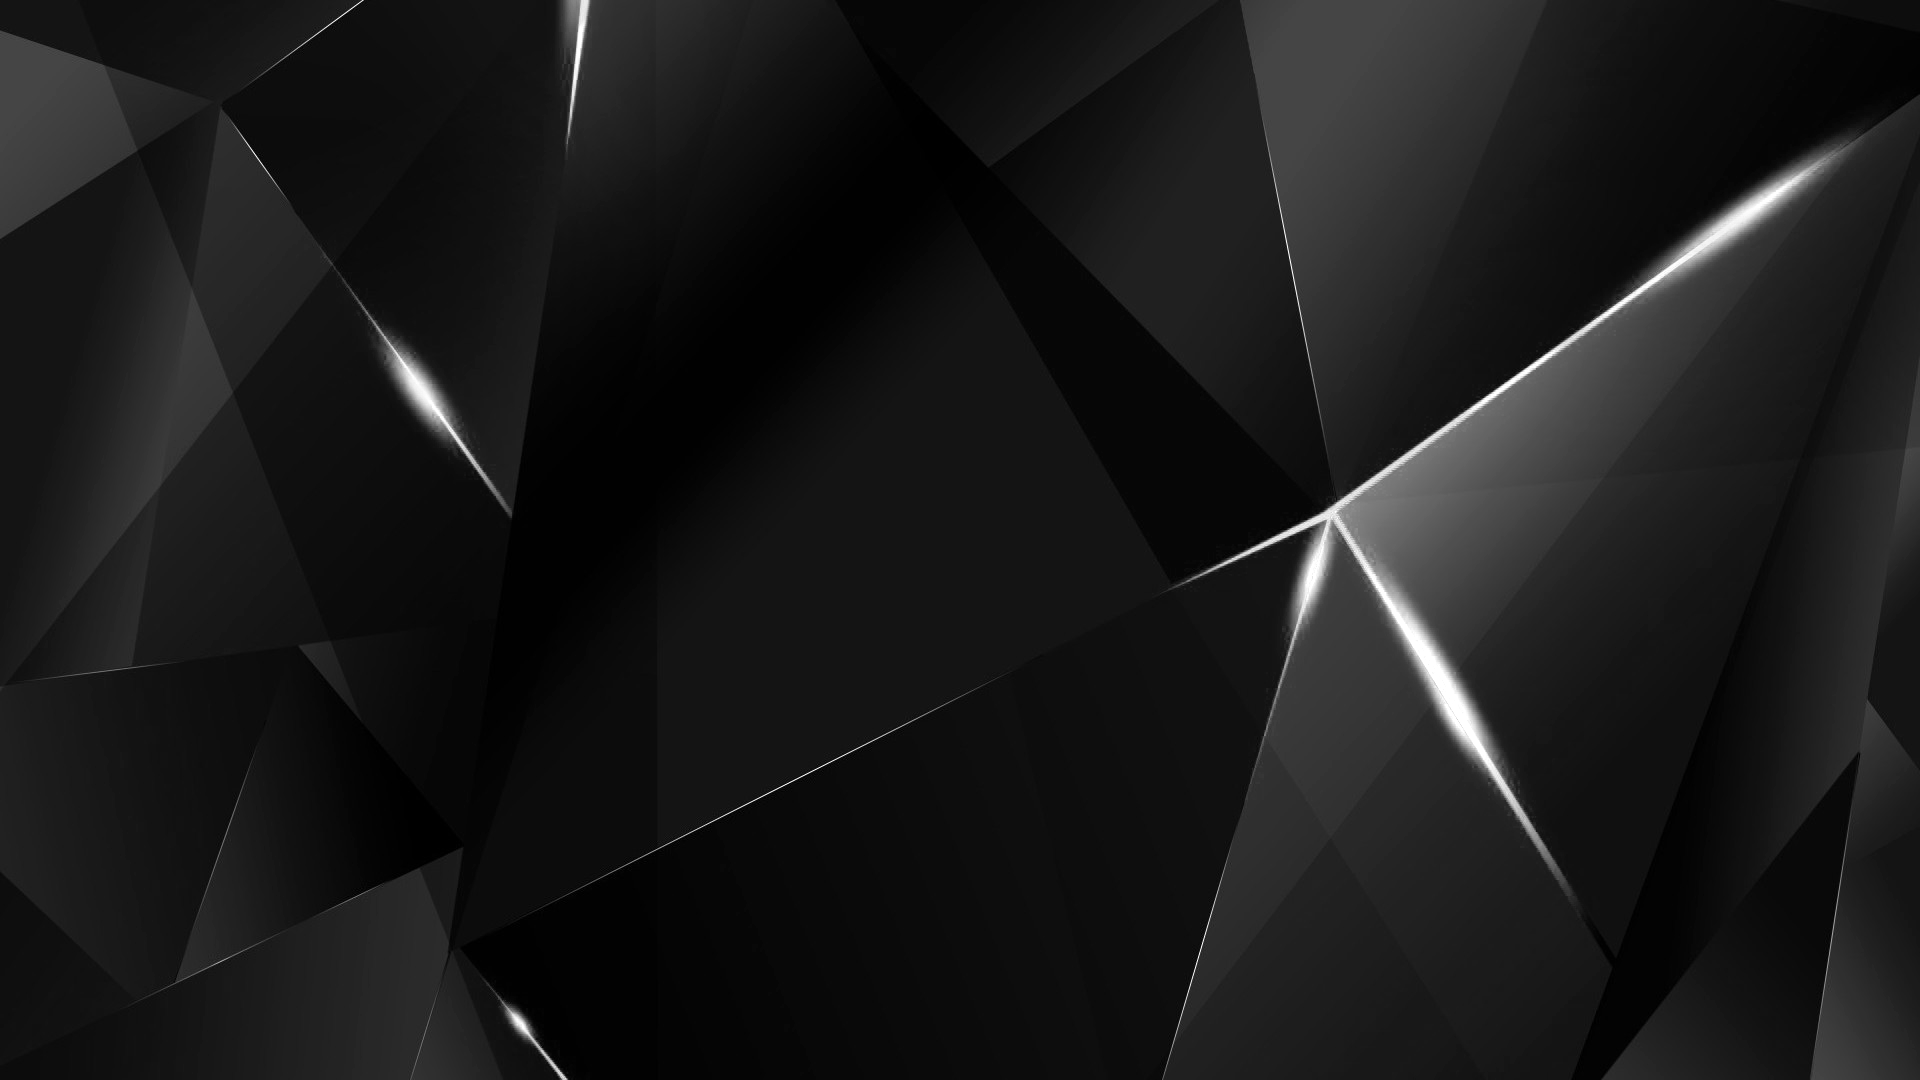 10 Top Black And Blue Shards Wallpaper Full Hd 1080p For: White Abstract Polygons (Black BG) By